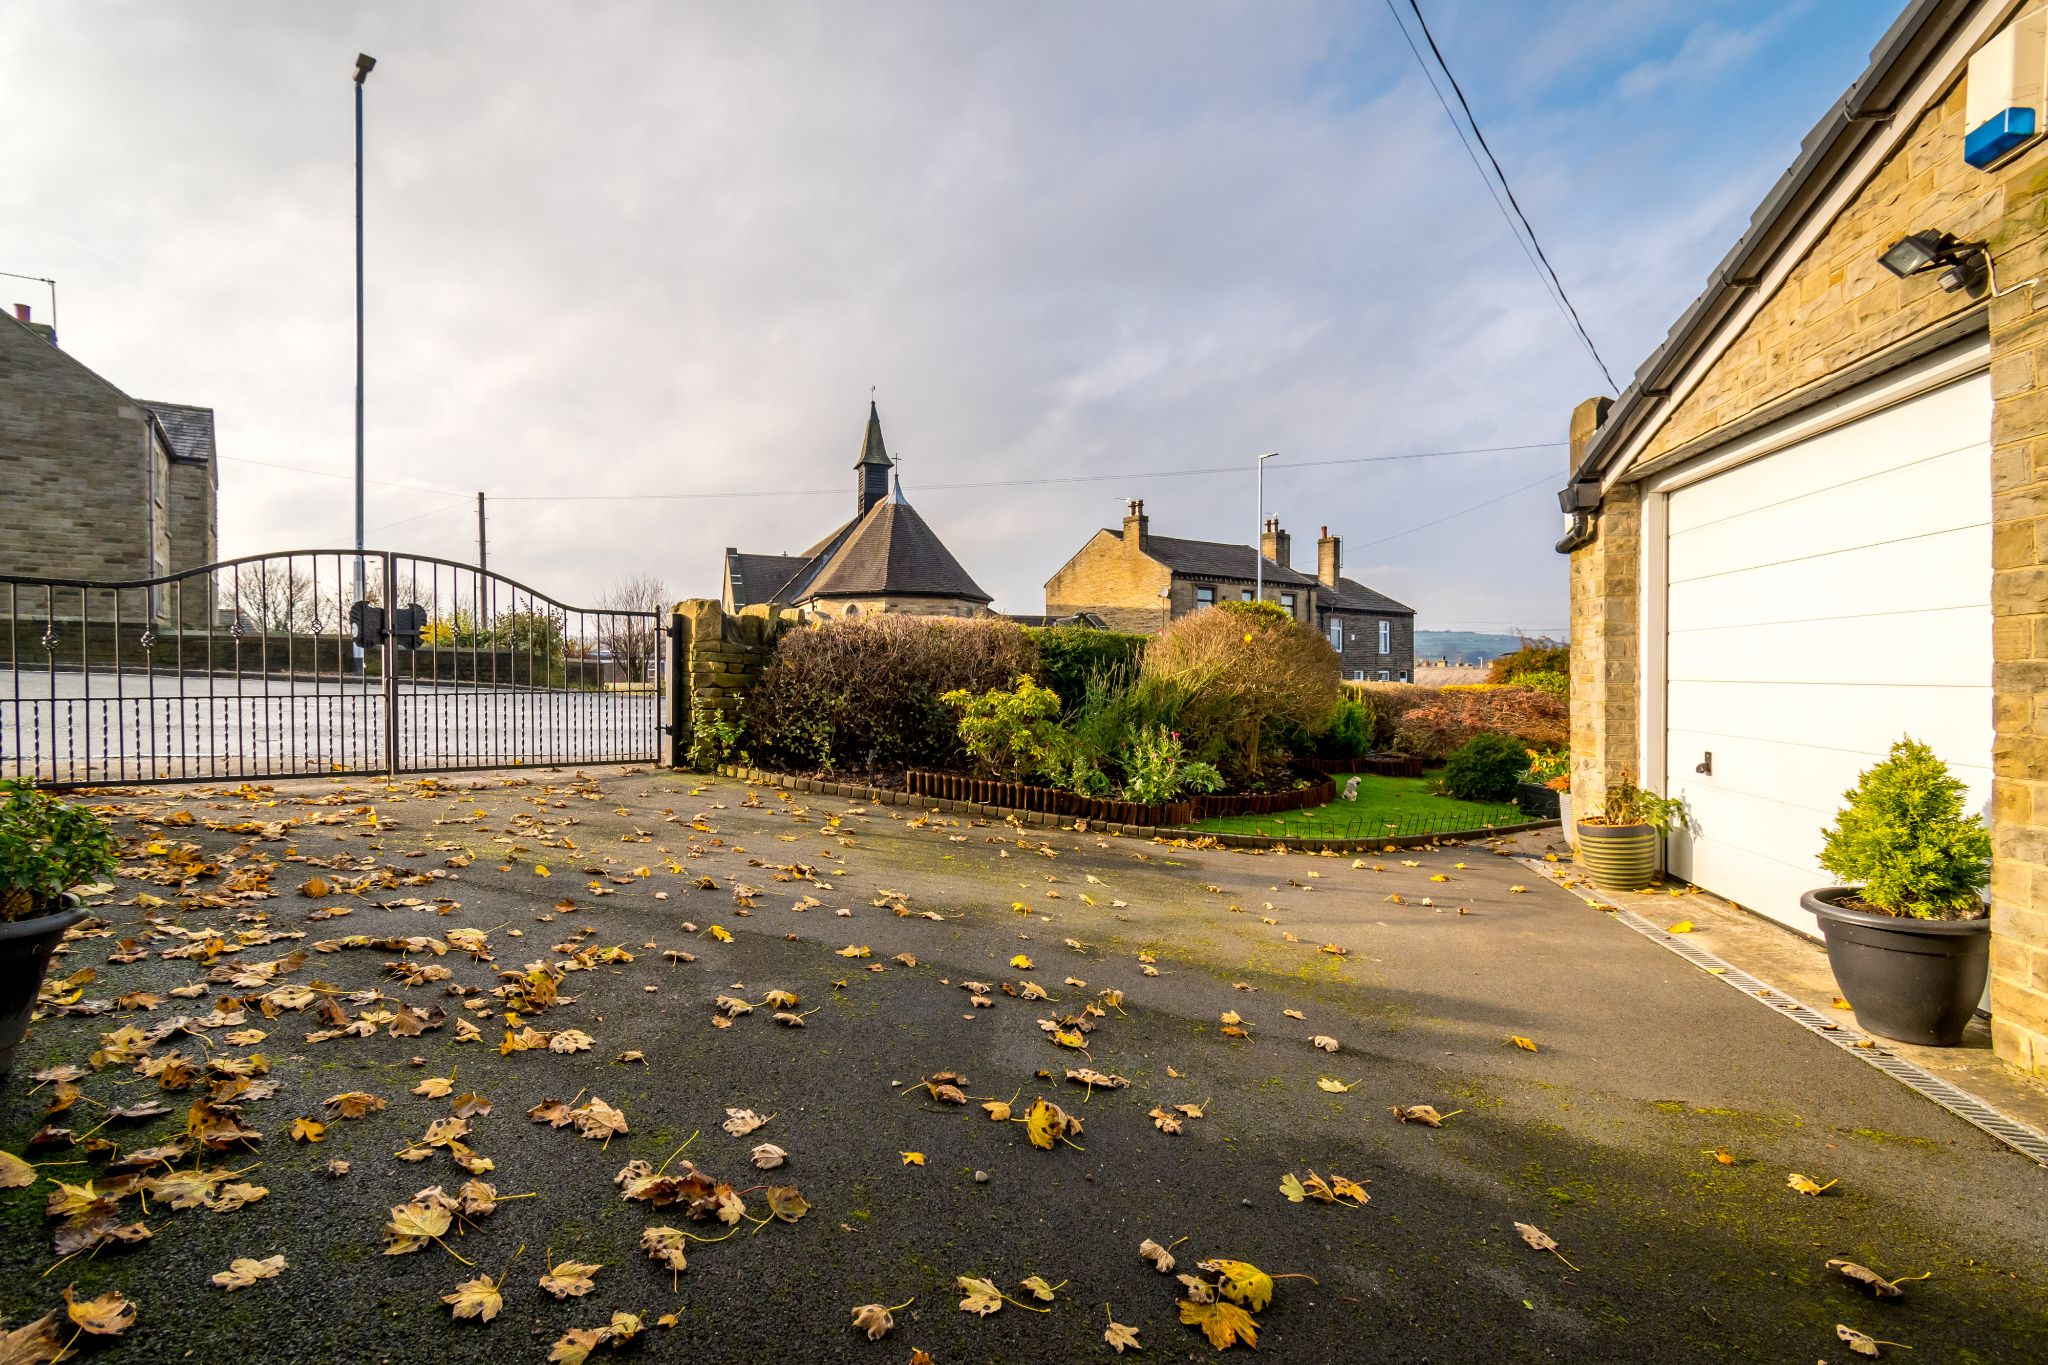 3 bedroom detached bungalow For Sale in Hove Edge - Right hand drive with access to the garage